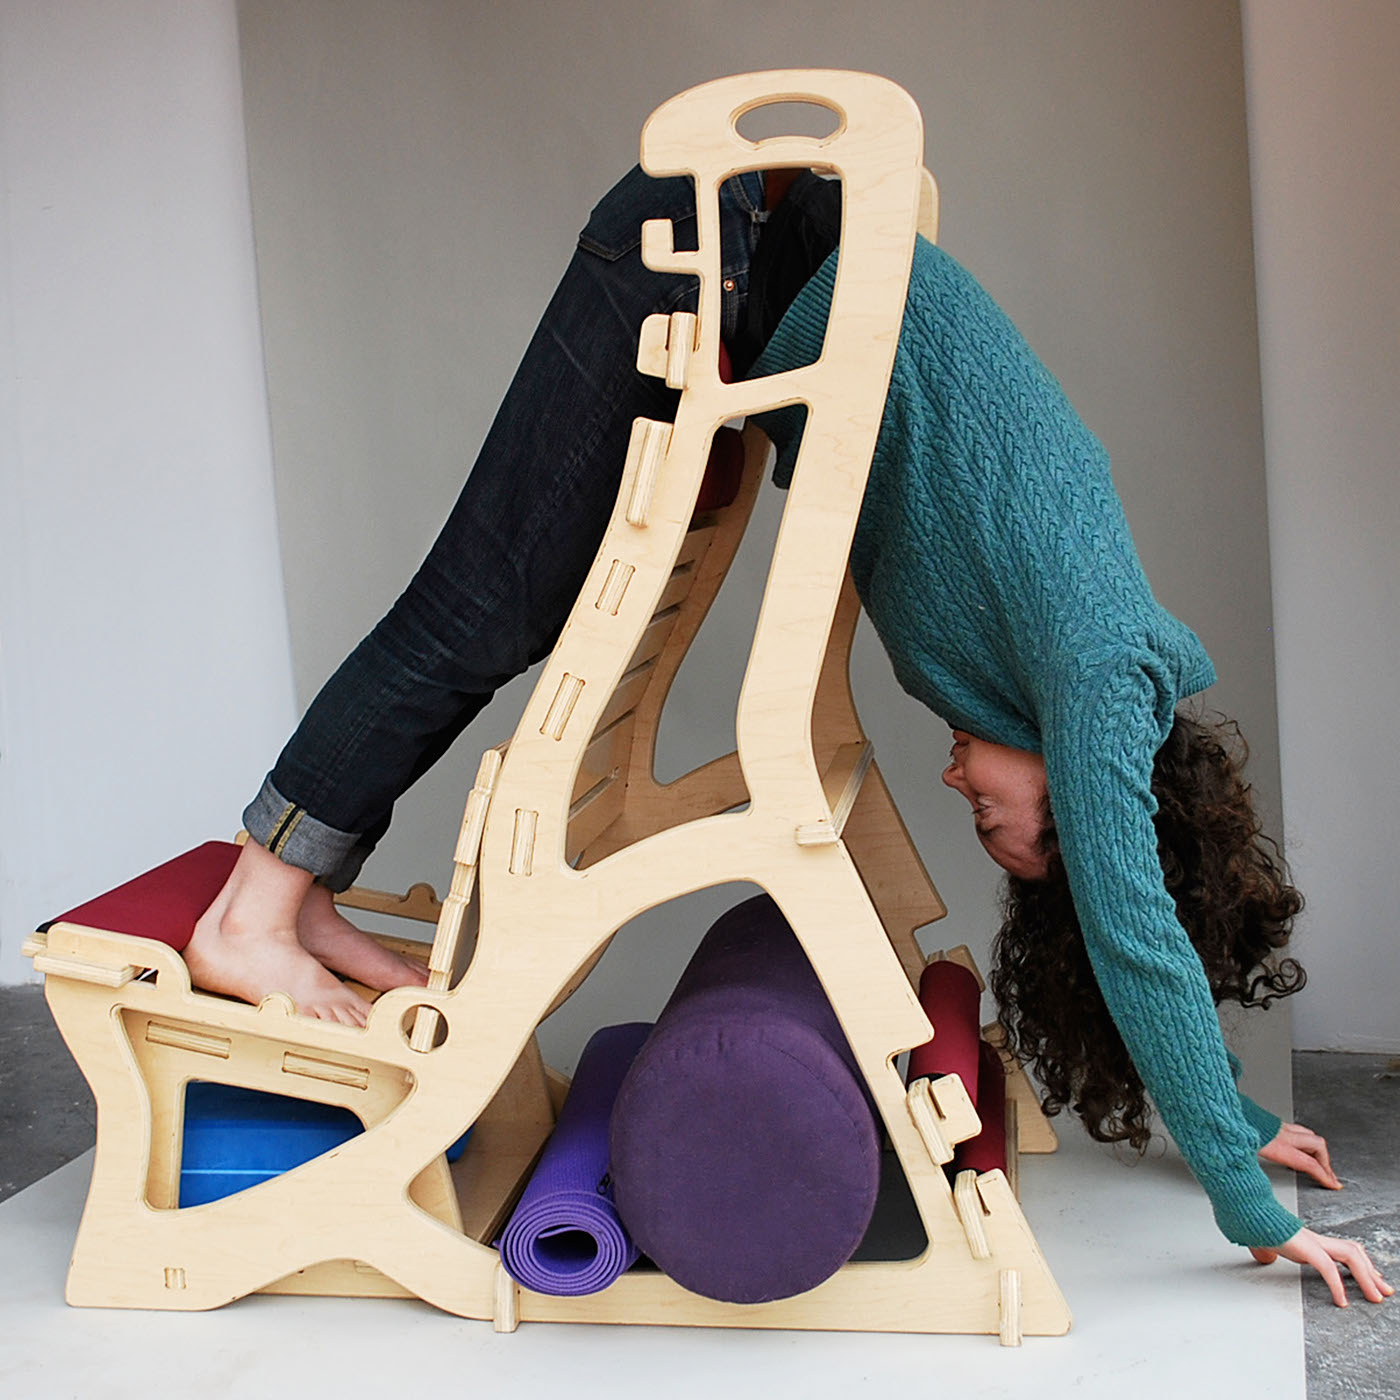 hanging upside down chair for back covers nottingham antigravity flat pack yoga on behance